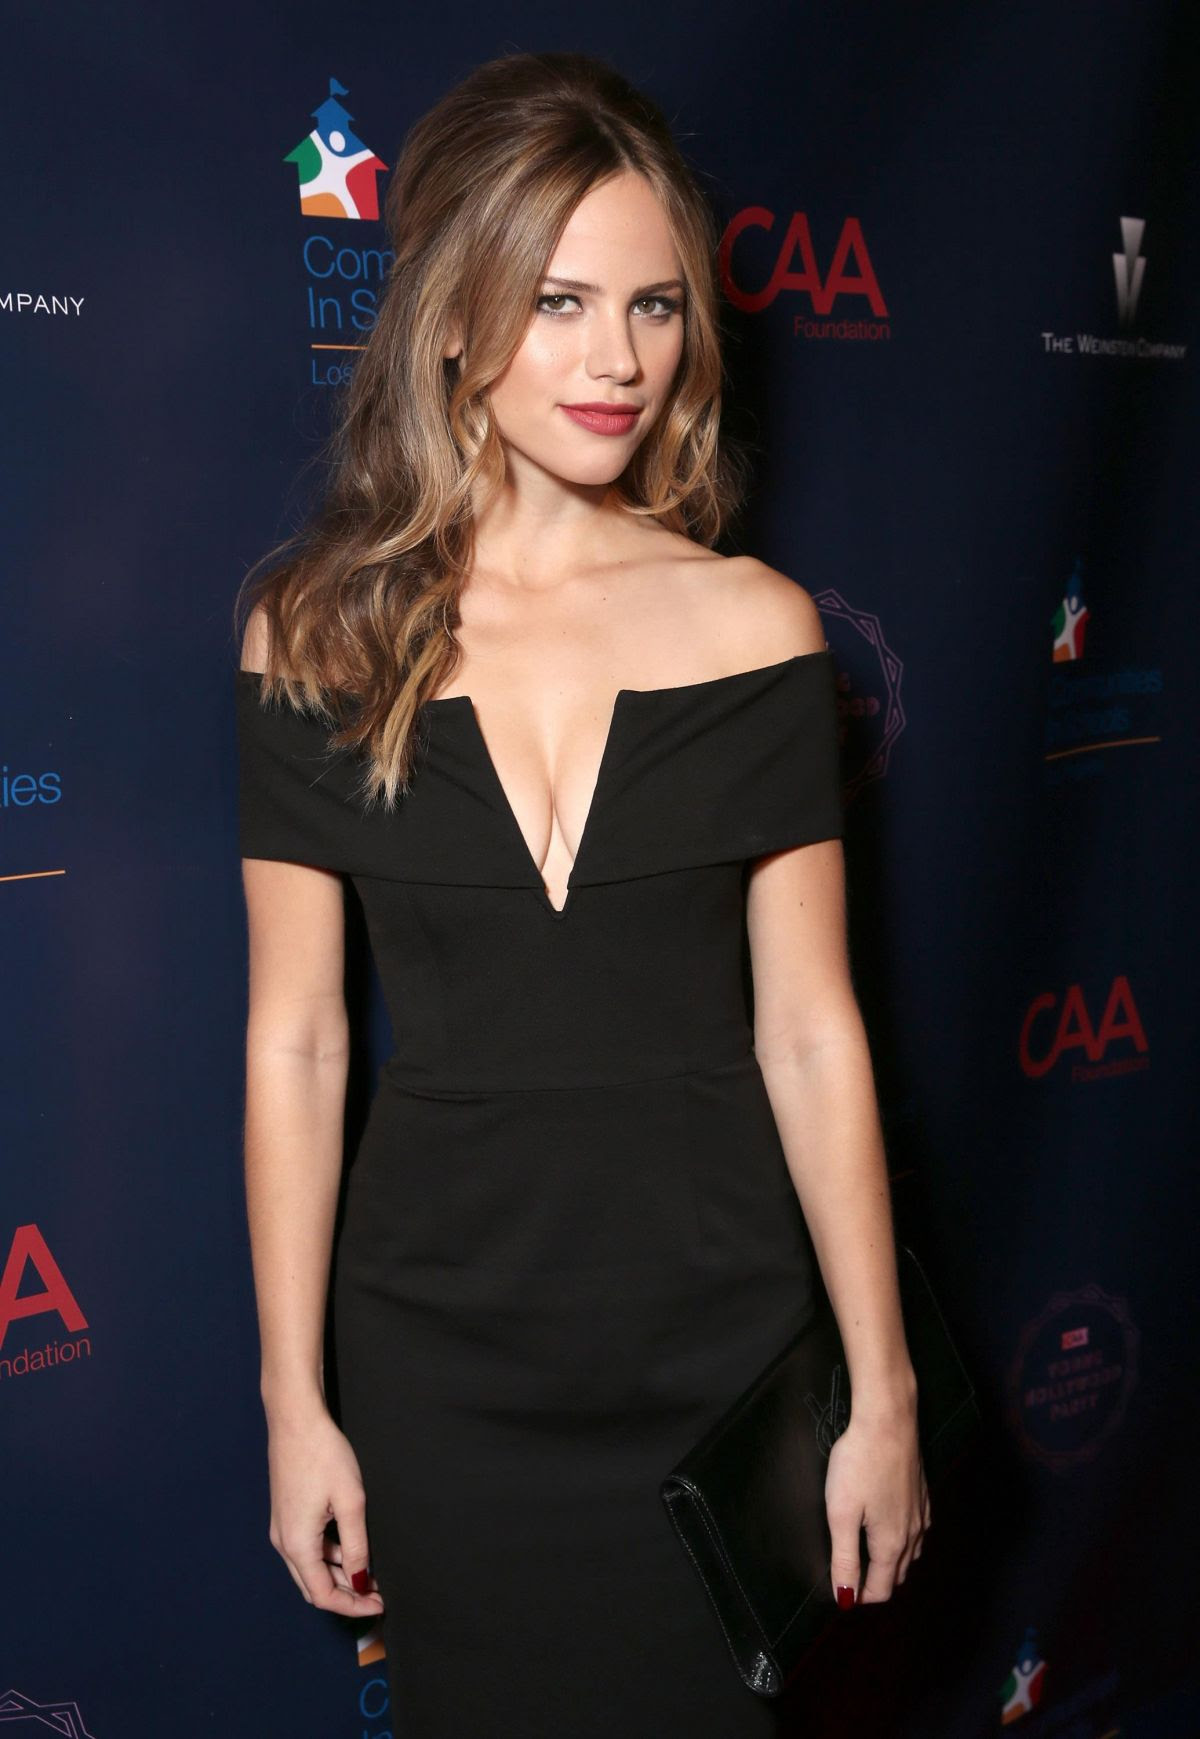 HALSTON SAGE at Annual CAA Young Hollywood Party in West Hollywood 10/08/2015